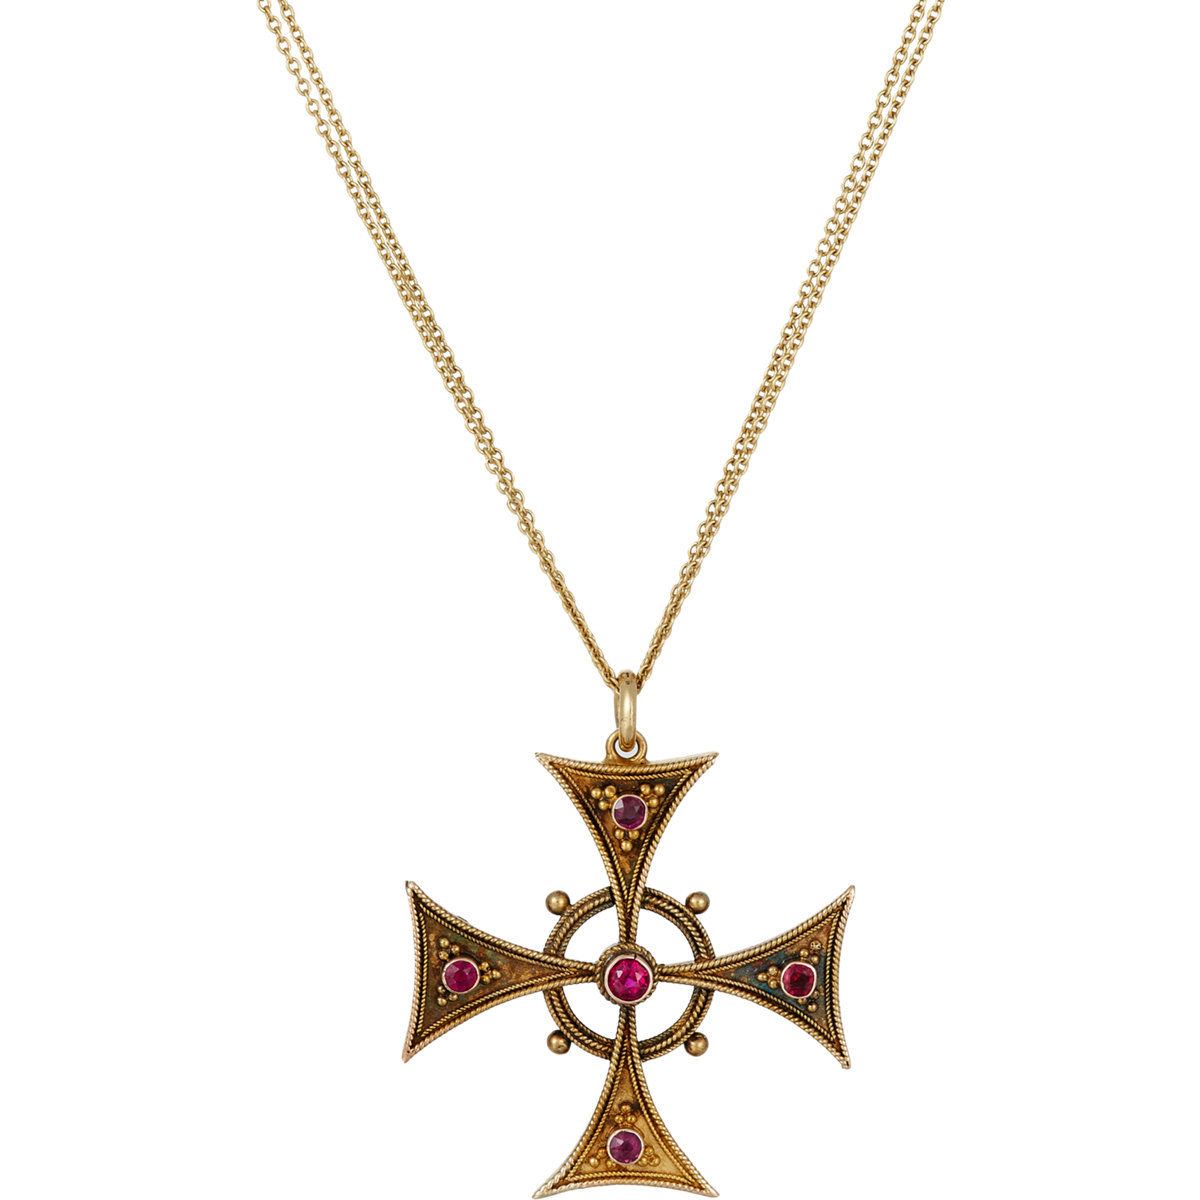 renee lewis celtic cross pendant necklace in metallic lyst. Black Bedroom Furniture Sets. Home Design Ideas